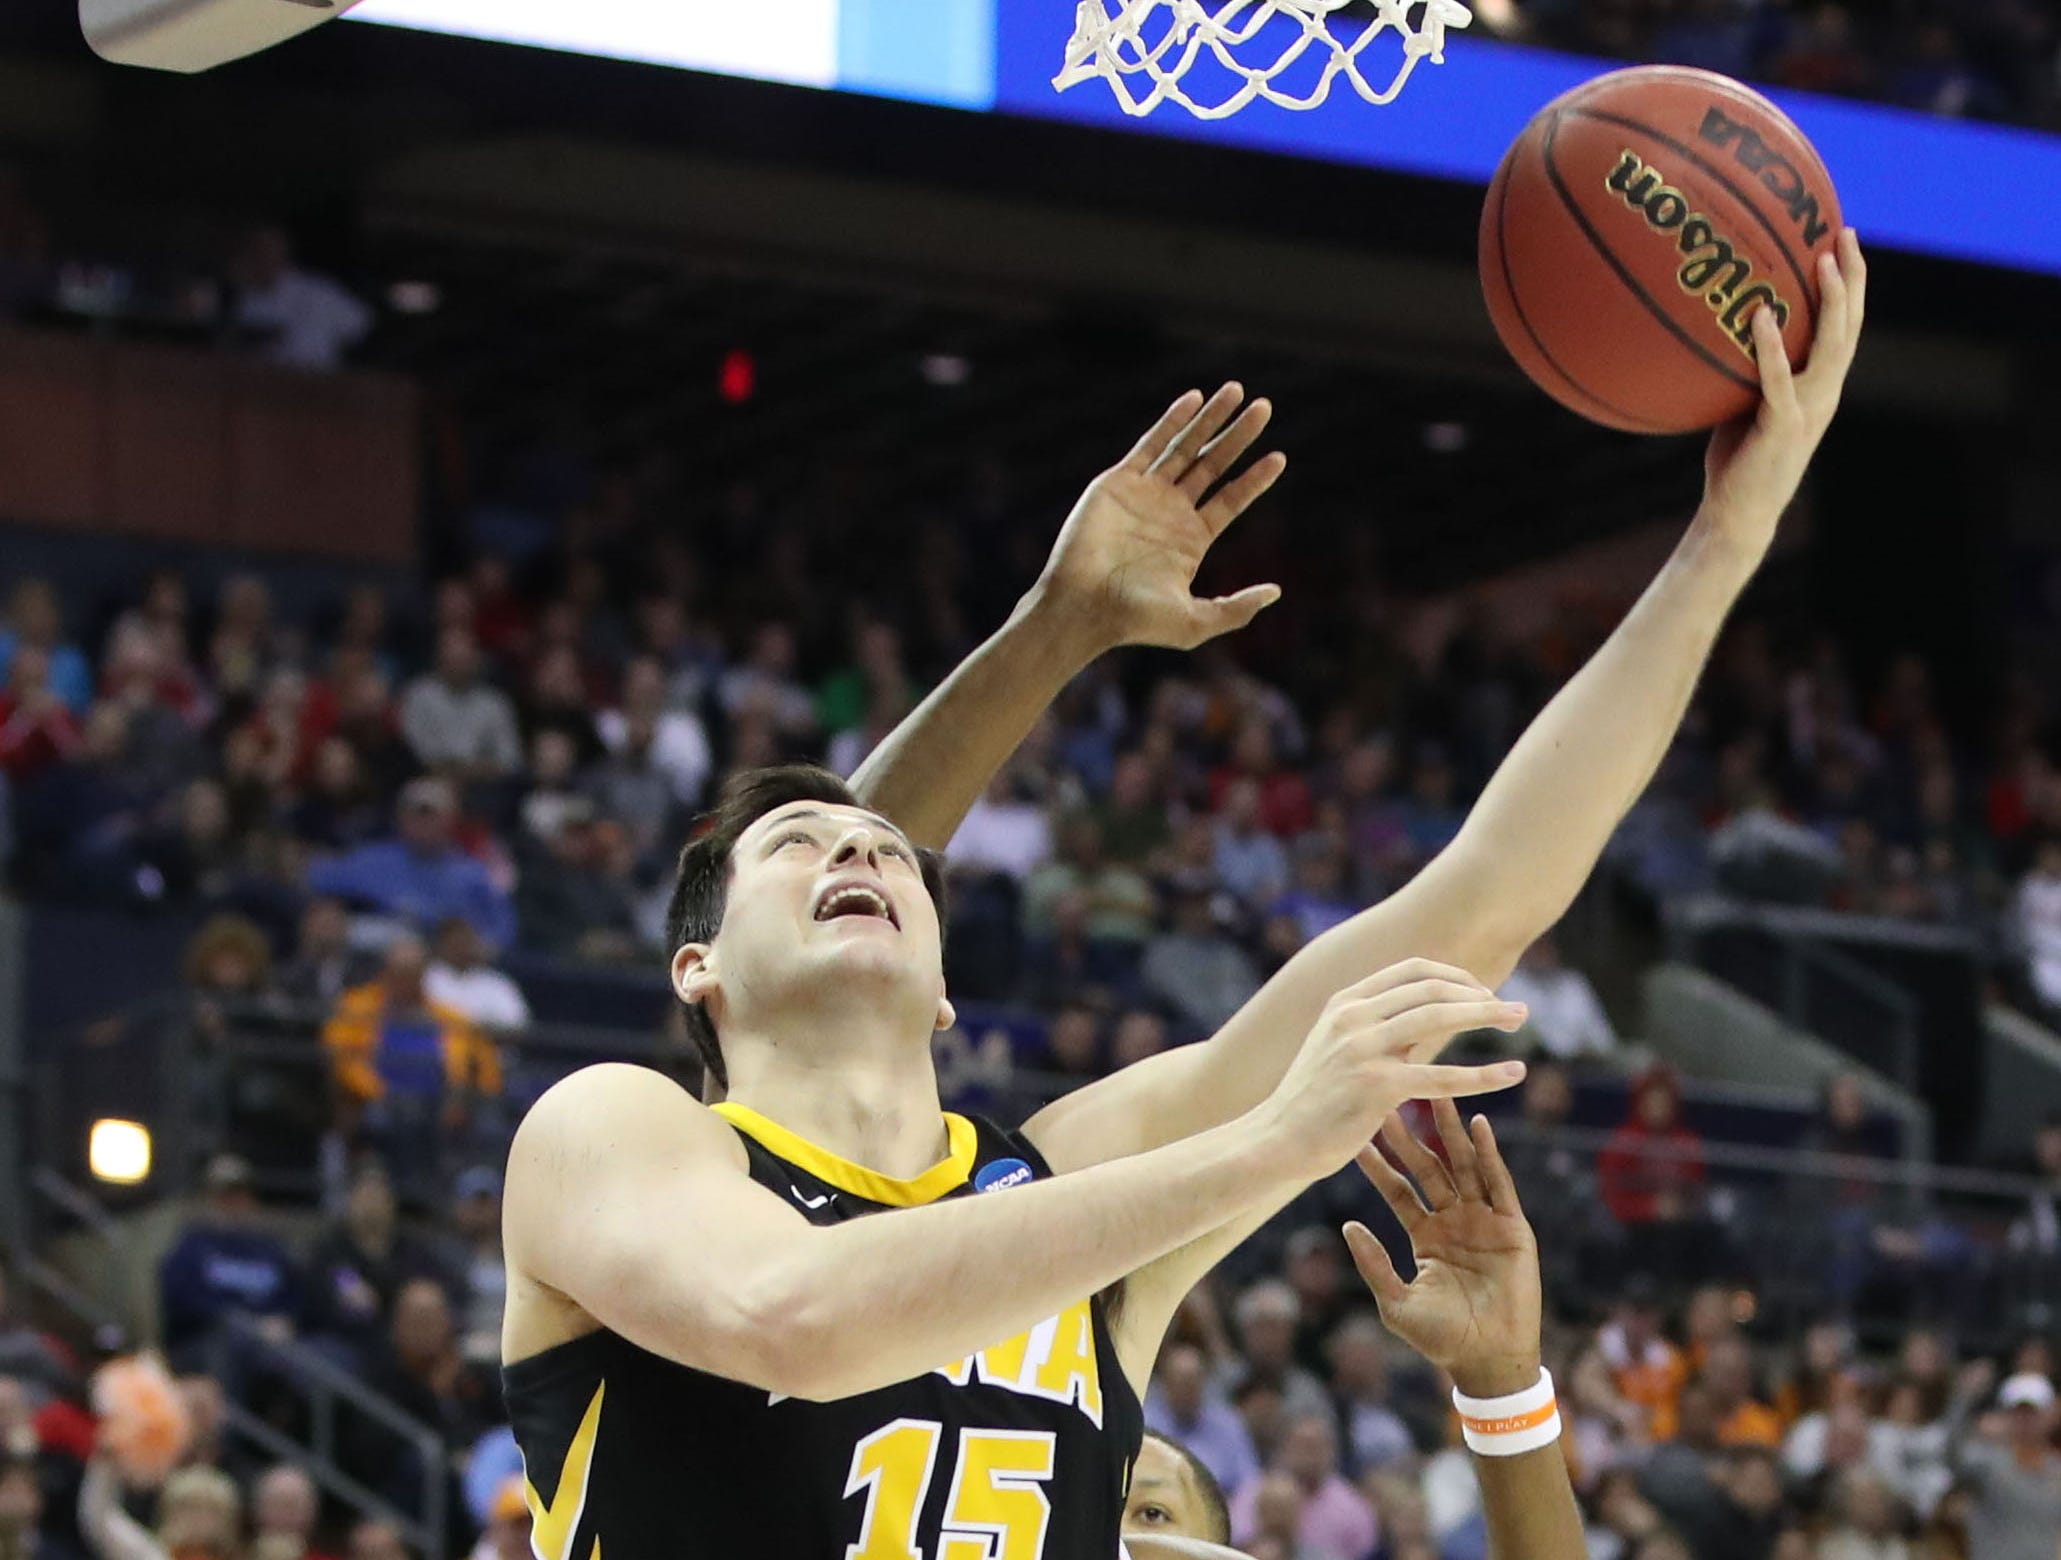 Iowa Hawkeyes forward Ryan Kriener (15) goes to the basket in the second half against the Tennessee Volunteers in the second round of the 2019 NCAA Tournament at Nationwide Arena.